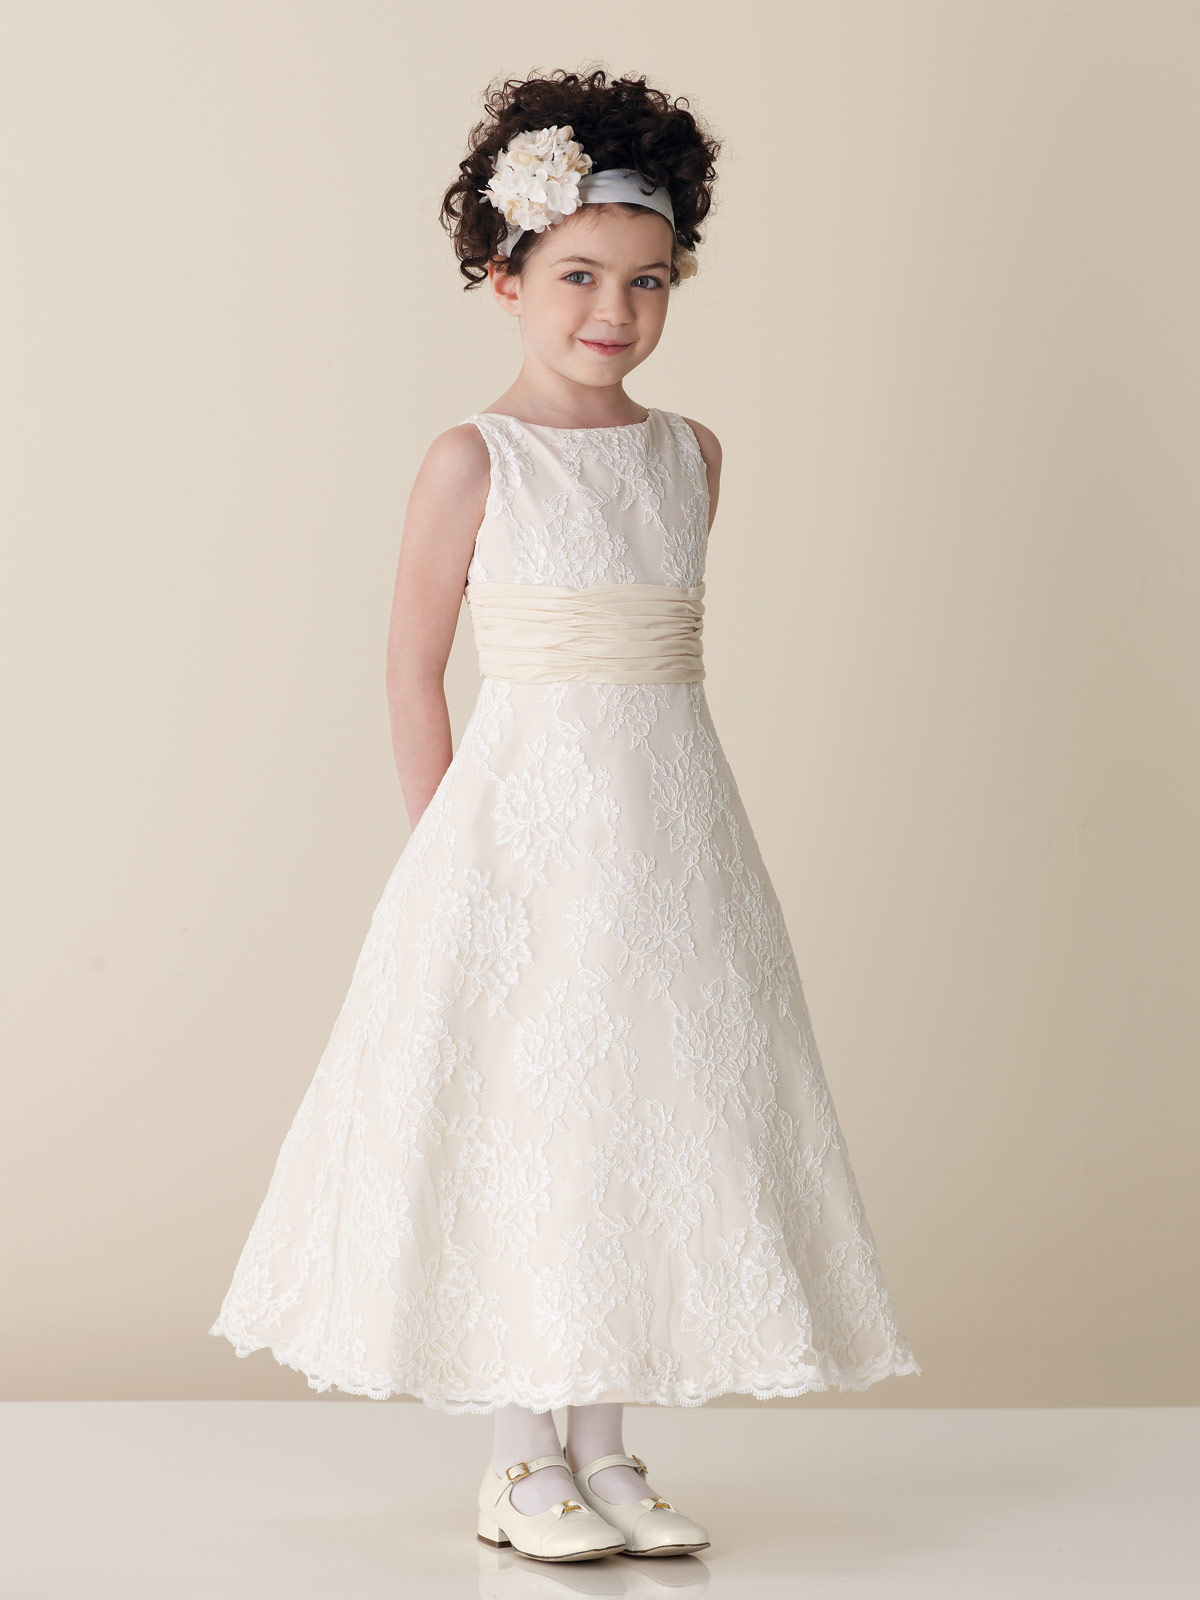 Free Wedding: Kids Wedding Dresses